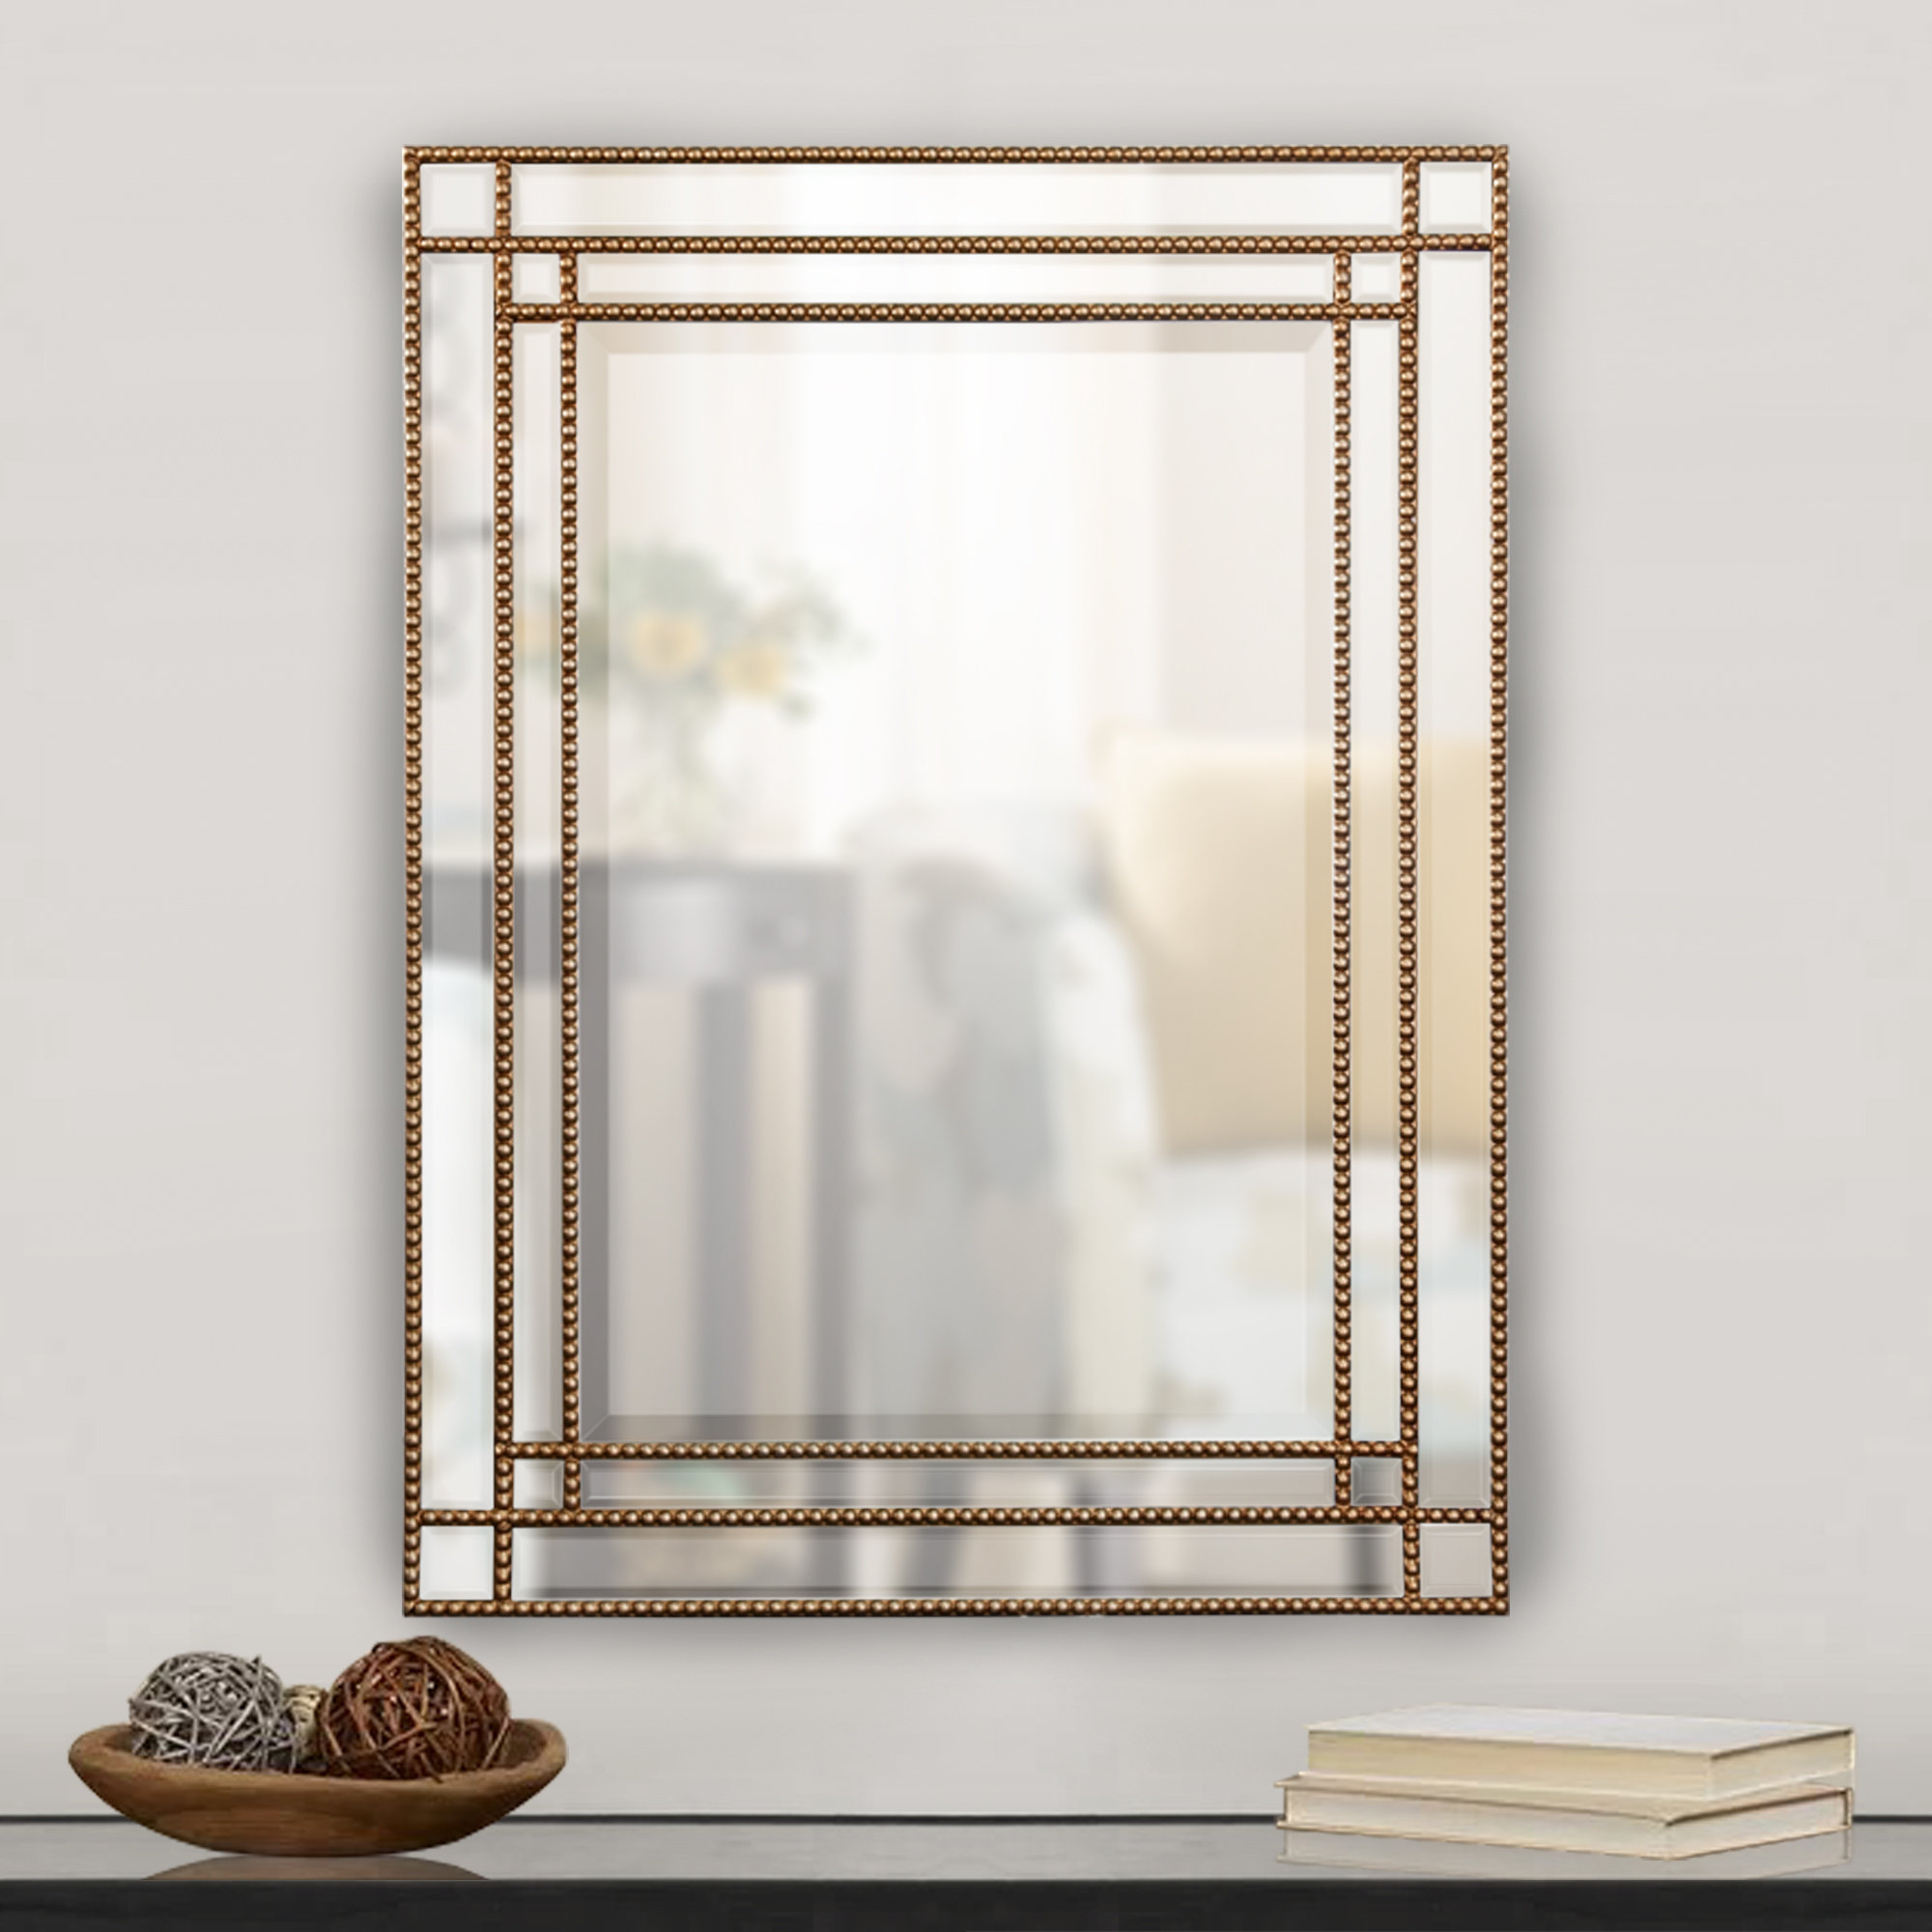 Beaded Frame Mirror | Wayfair Inside Lake Park Beveled Beaded Accent Wall Mirrors (View 11 of 20)